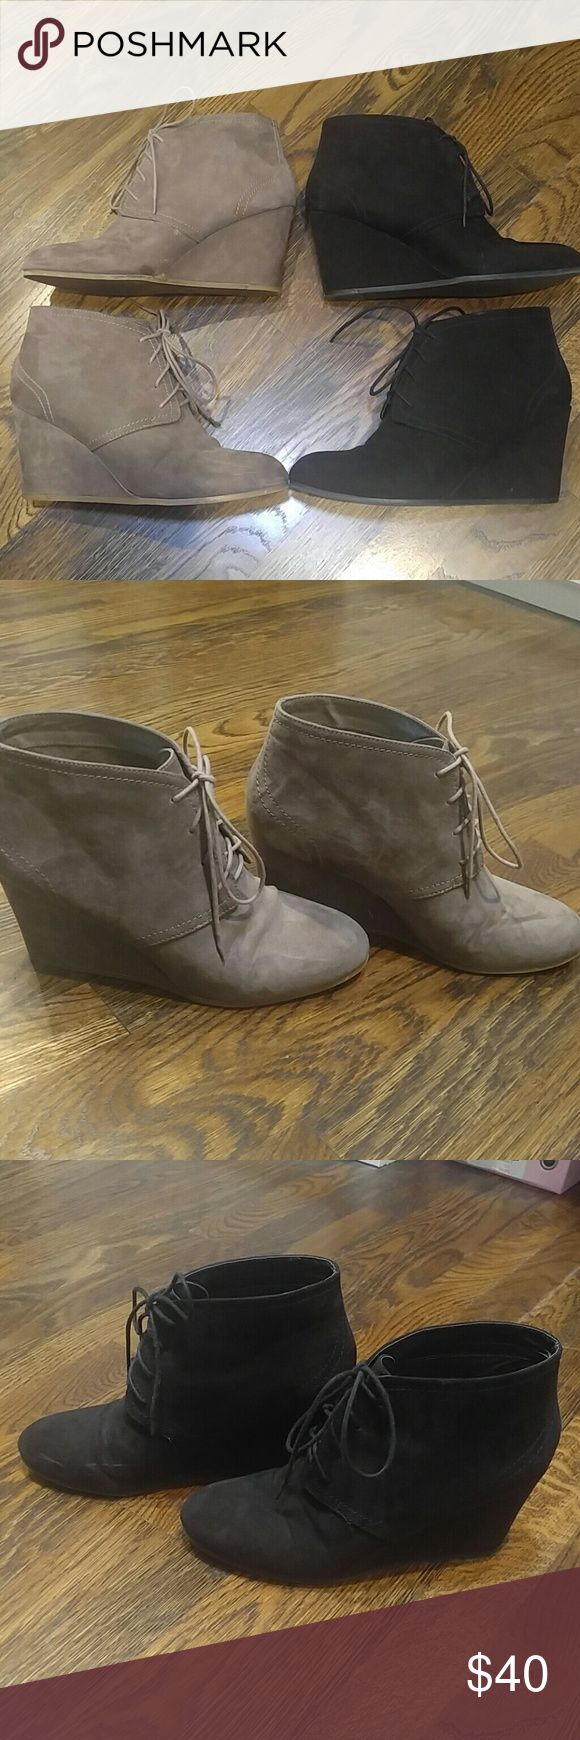 Wedge Ankle Booties (2 pair) 2 pair of Women's suede lace up ankle booties w wedge heel. Minimally worn. I had them for one season. Only sign of wear are the marks on the black pair (see pic 4). The tan pair doesn't have any marks. Price is for BOTH pairs! Original price was $60 a pair. Steal of a deal!!!! Bundle w another item and save!!! Arizona Jean Company Shoes Ankle Boots & Booties